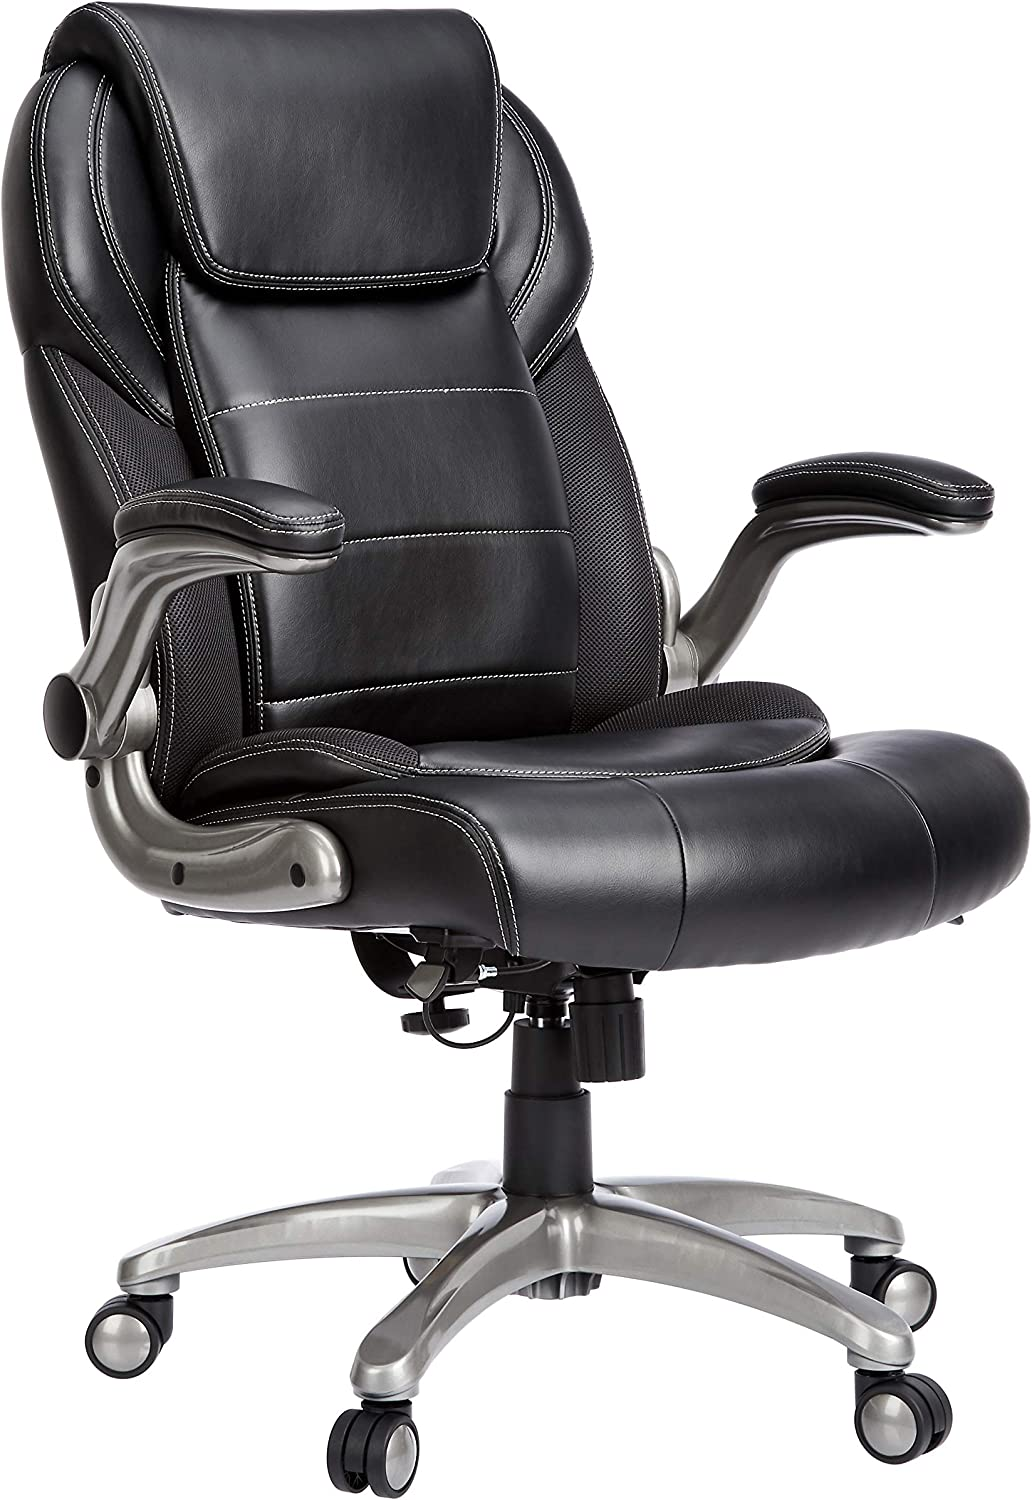 AmazonCommercial chair